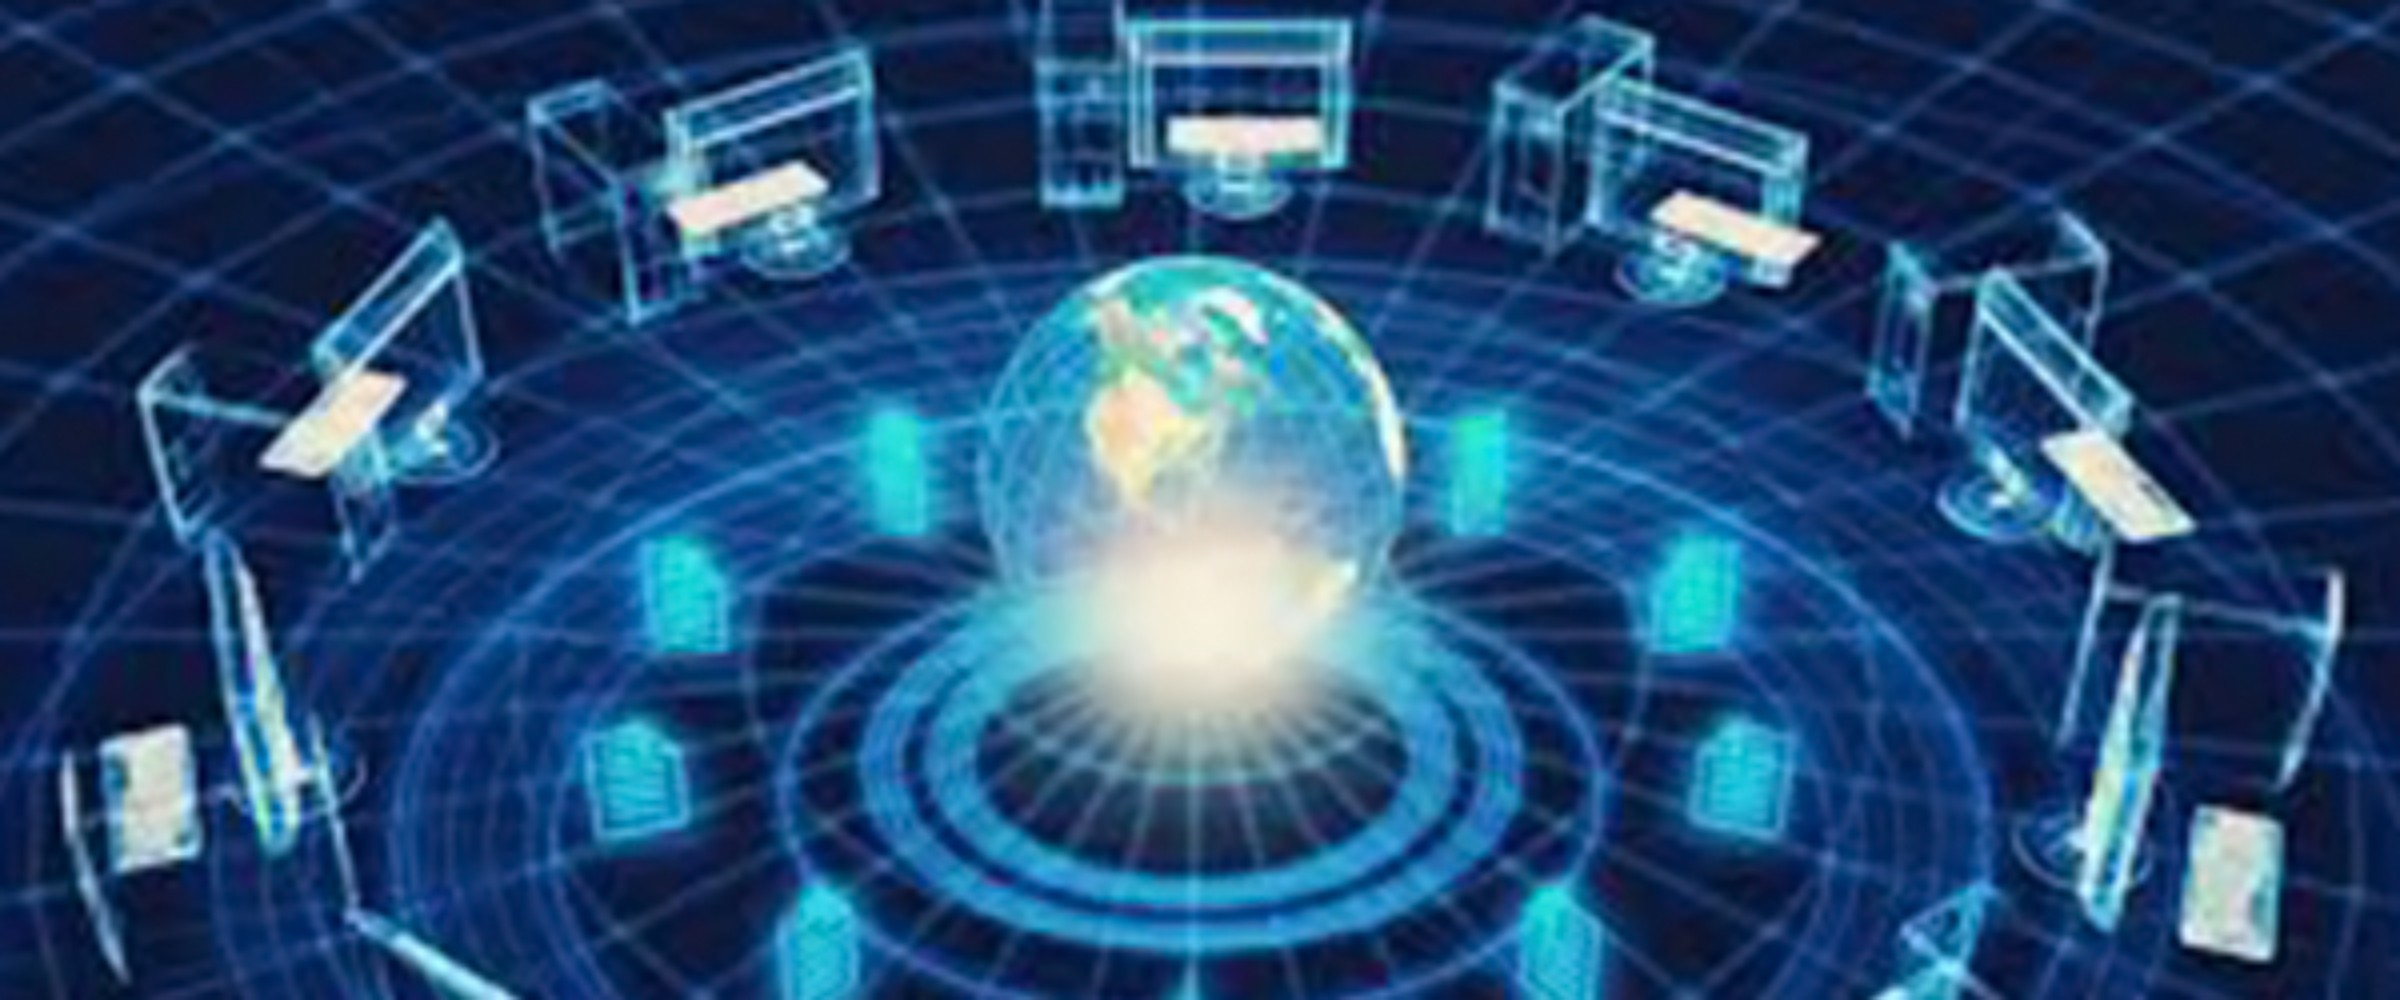 Enterprise Risk Management 2019 Global Trends, Market Size, Share, Status, SWOT Analysis and Forecast to 2025